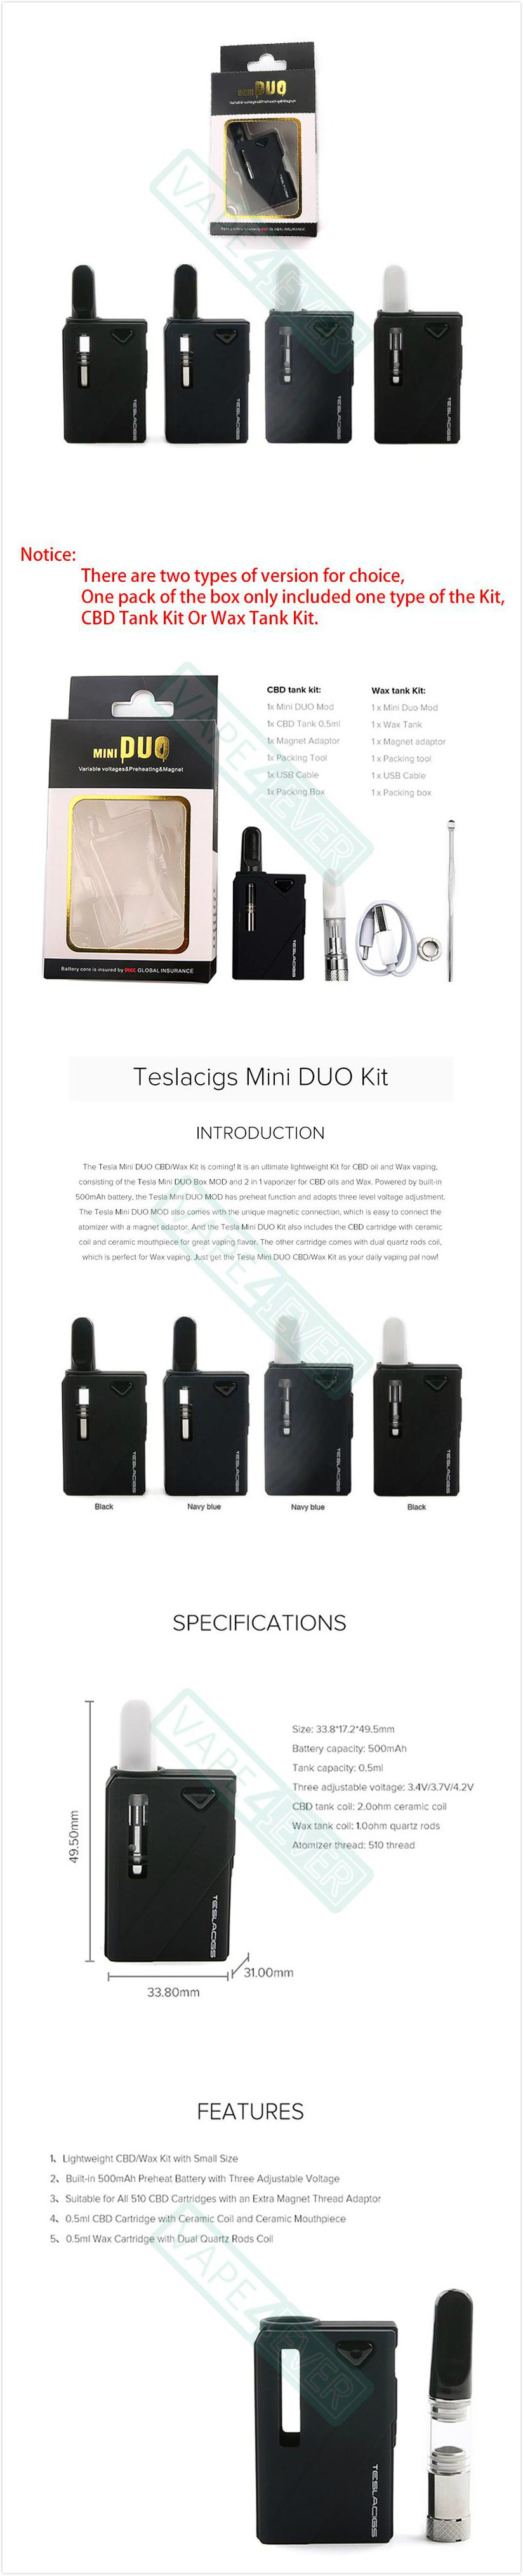 Teslacigs Mini Duo Starter Kit 500mAh Box Mod & CBD/Wax Tank For Vaporizer Instruction